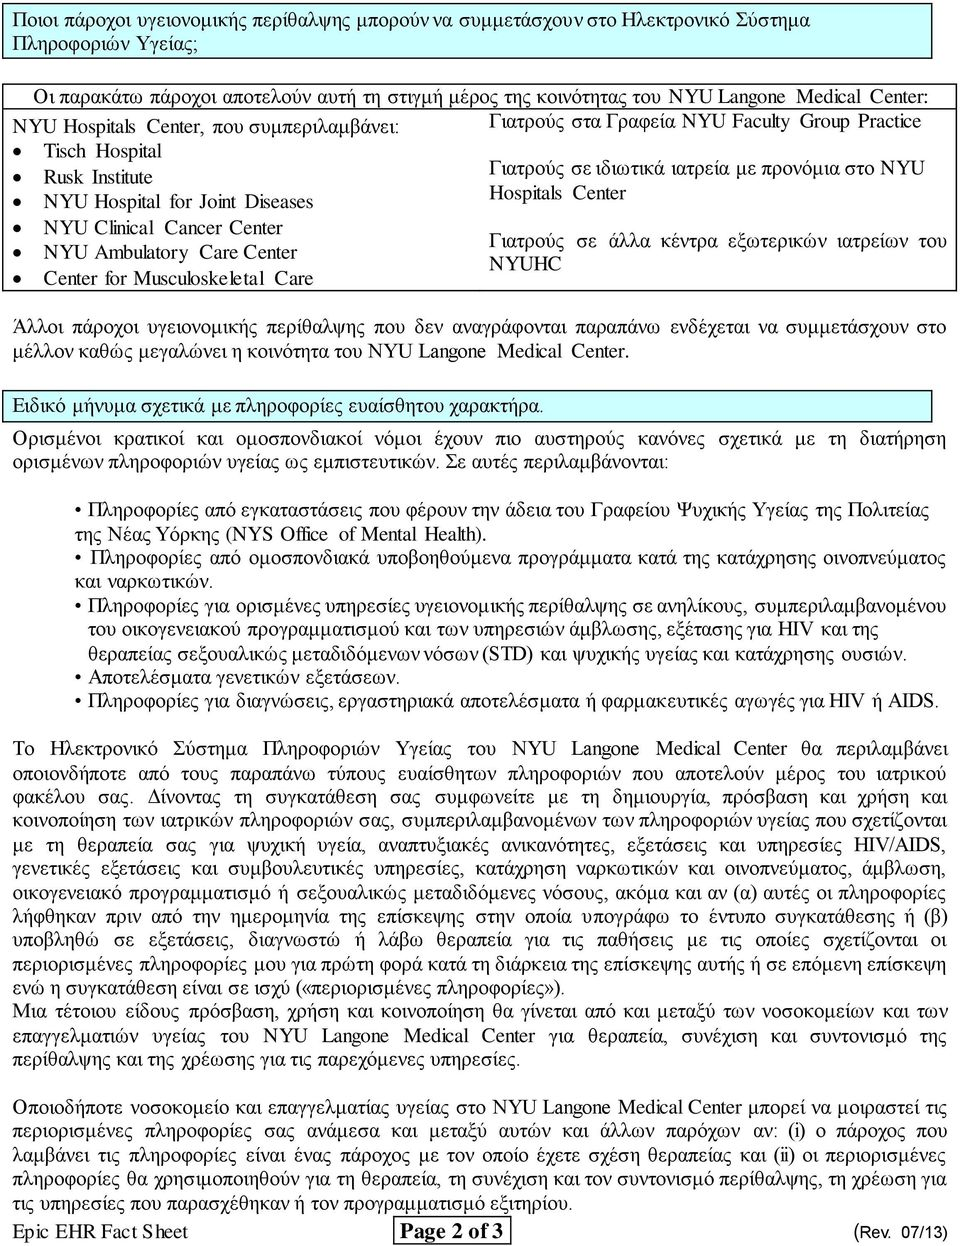 Joint Diseases Hospitals Center NYU Clinical Cancer Center Γιατρούς σε άλλα κέντρα εξωτερικών ιατρείων του NYU Ambulatory Care Center NYUHC Center for Musculoskeletal Care Άλλοι πάροχοι υγειονομικής